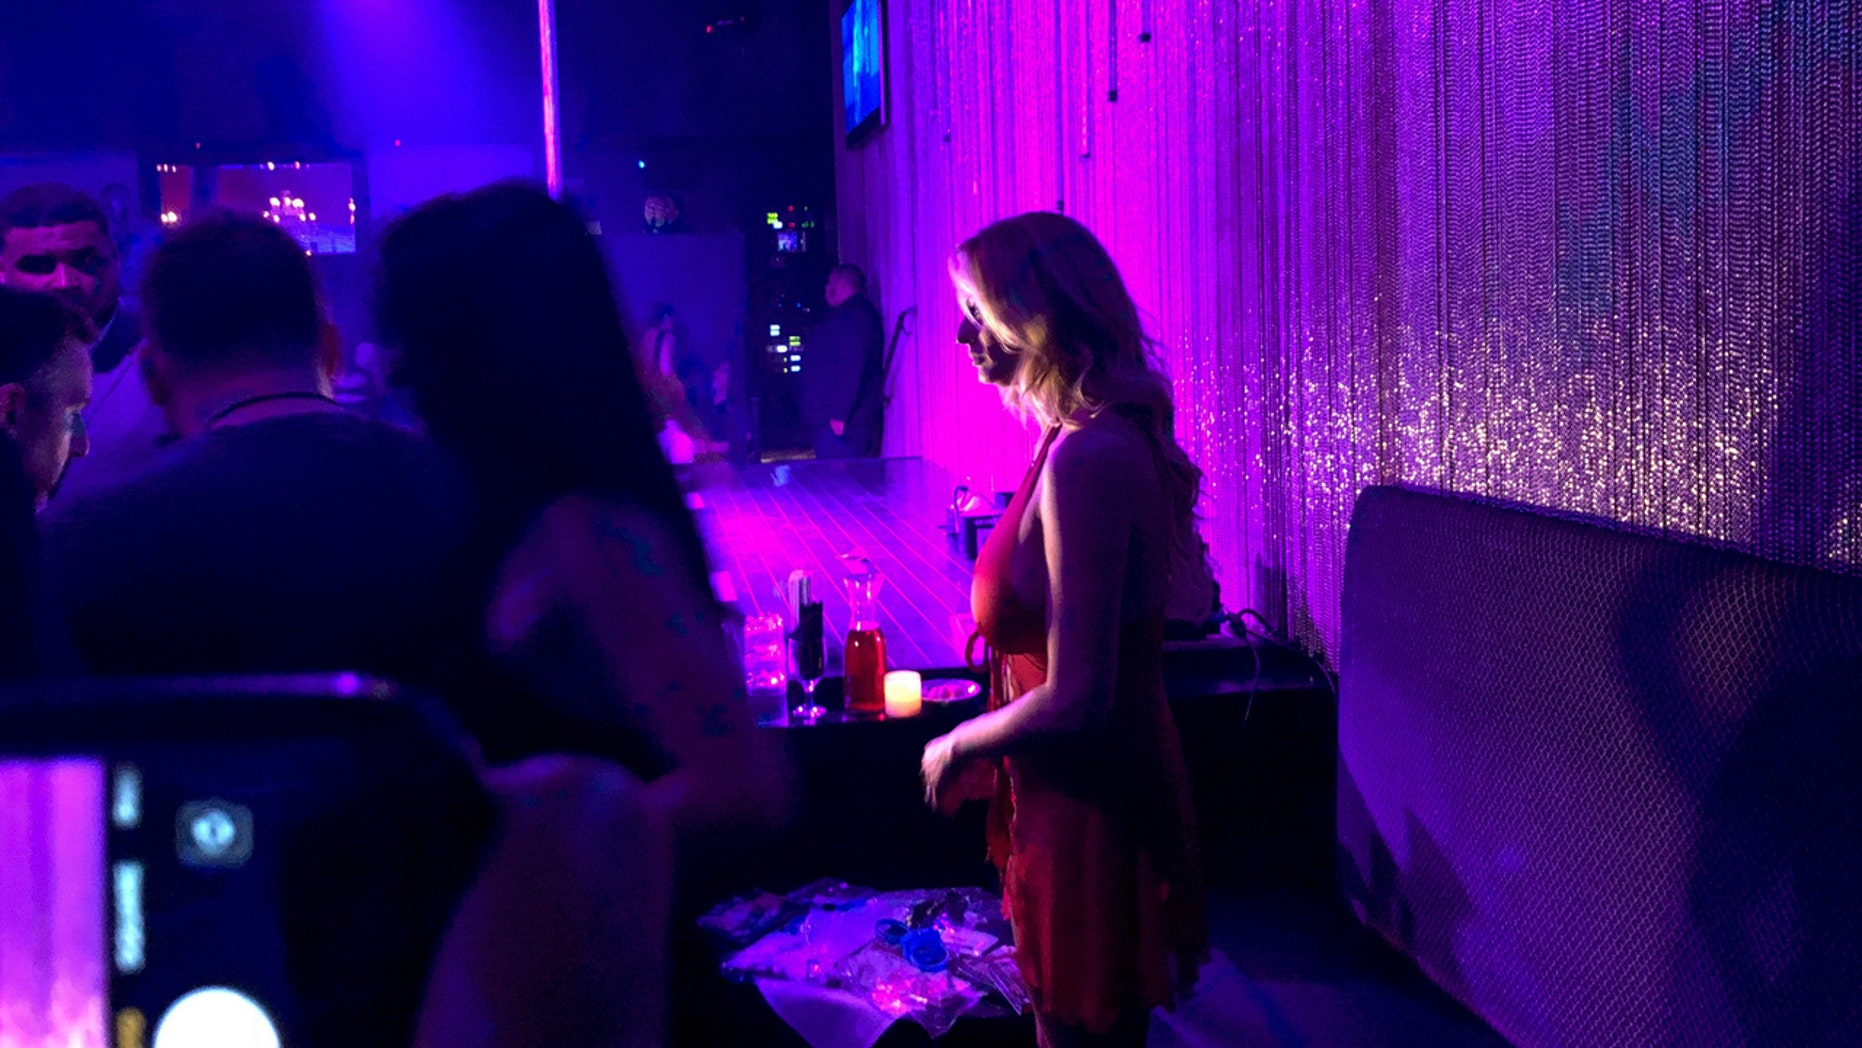 """Stormy Daniels holds a meet-and-greet with patrons during her appearance at the strip club Gossip on Saturday, May 5, 2018, in Melville, New York.  President Donald Trump suggested Friday that Rudy Giuliani, the aggressive new face of his legal team, needed to """"get his facts straight"""" about the hush money paid to porn actress Daniels just before the 2016 election. The money was paid to Daniels to keep her quiet about her allegations of an affair with Trump. (AP Photo/Kevin Hagen)"""